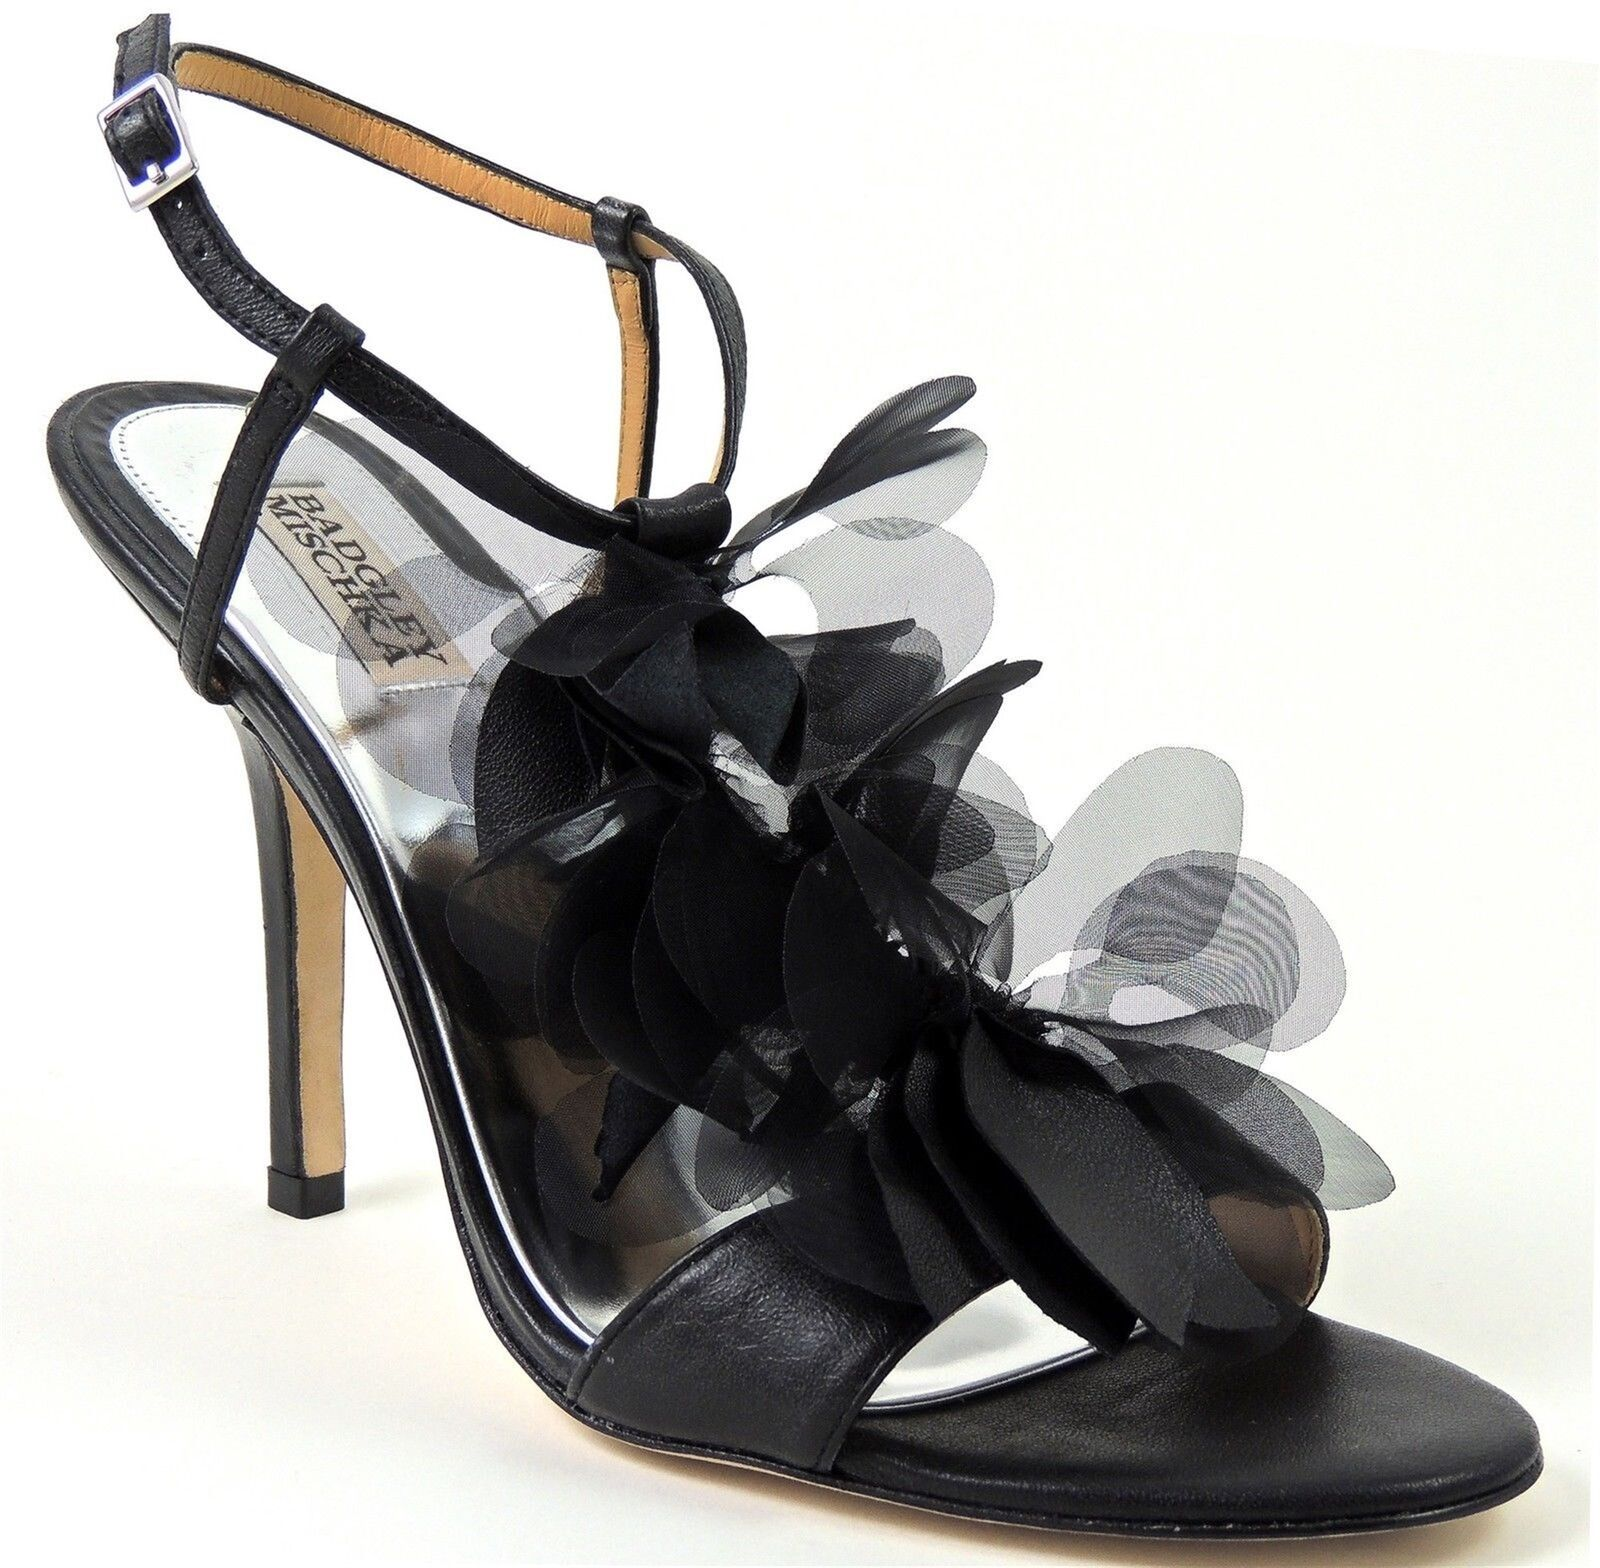 Badgley Mischka Donna  Dreamy T-Strap Sandals nero Leather Leather Leather Dimensione 10 M 0a3877